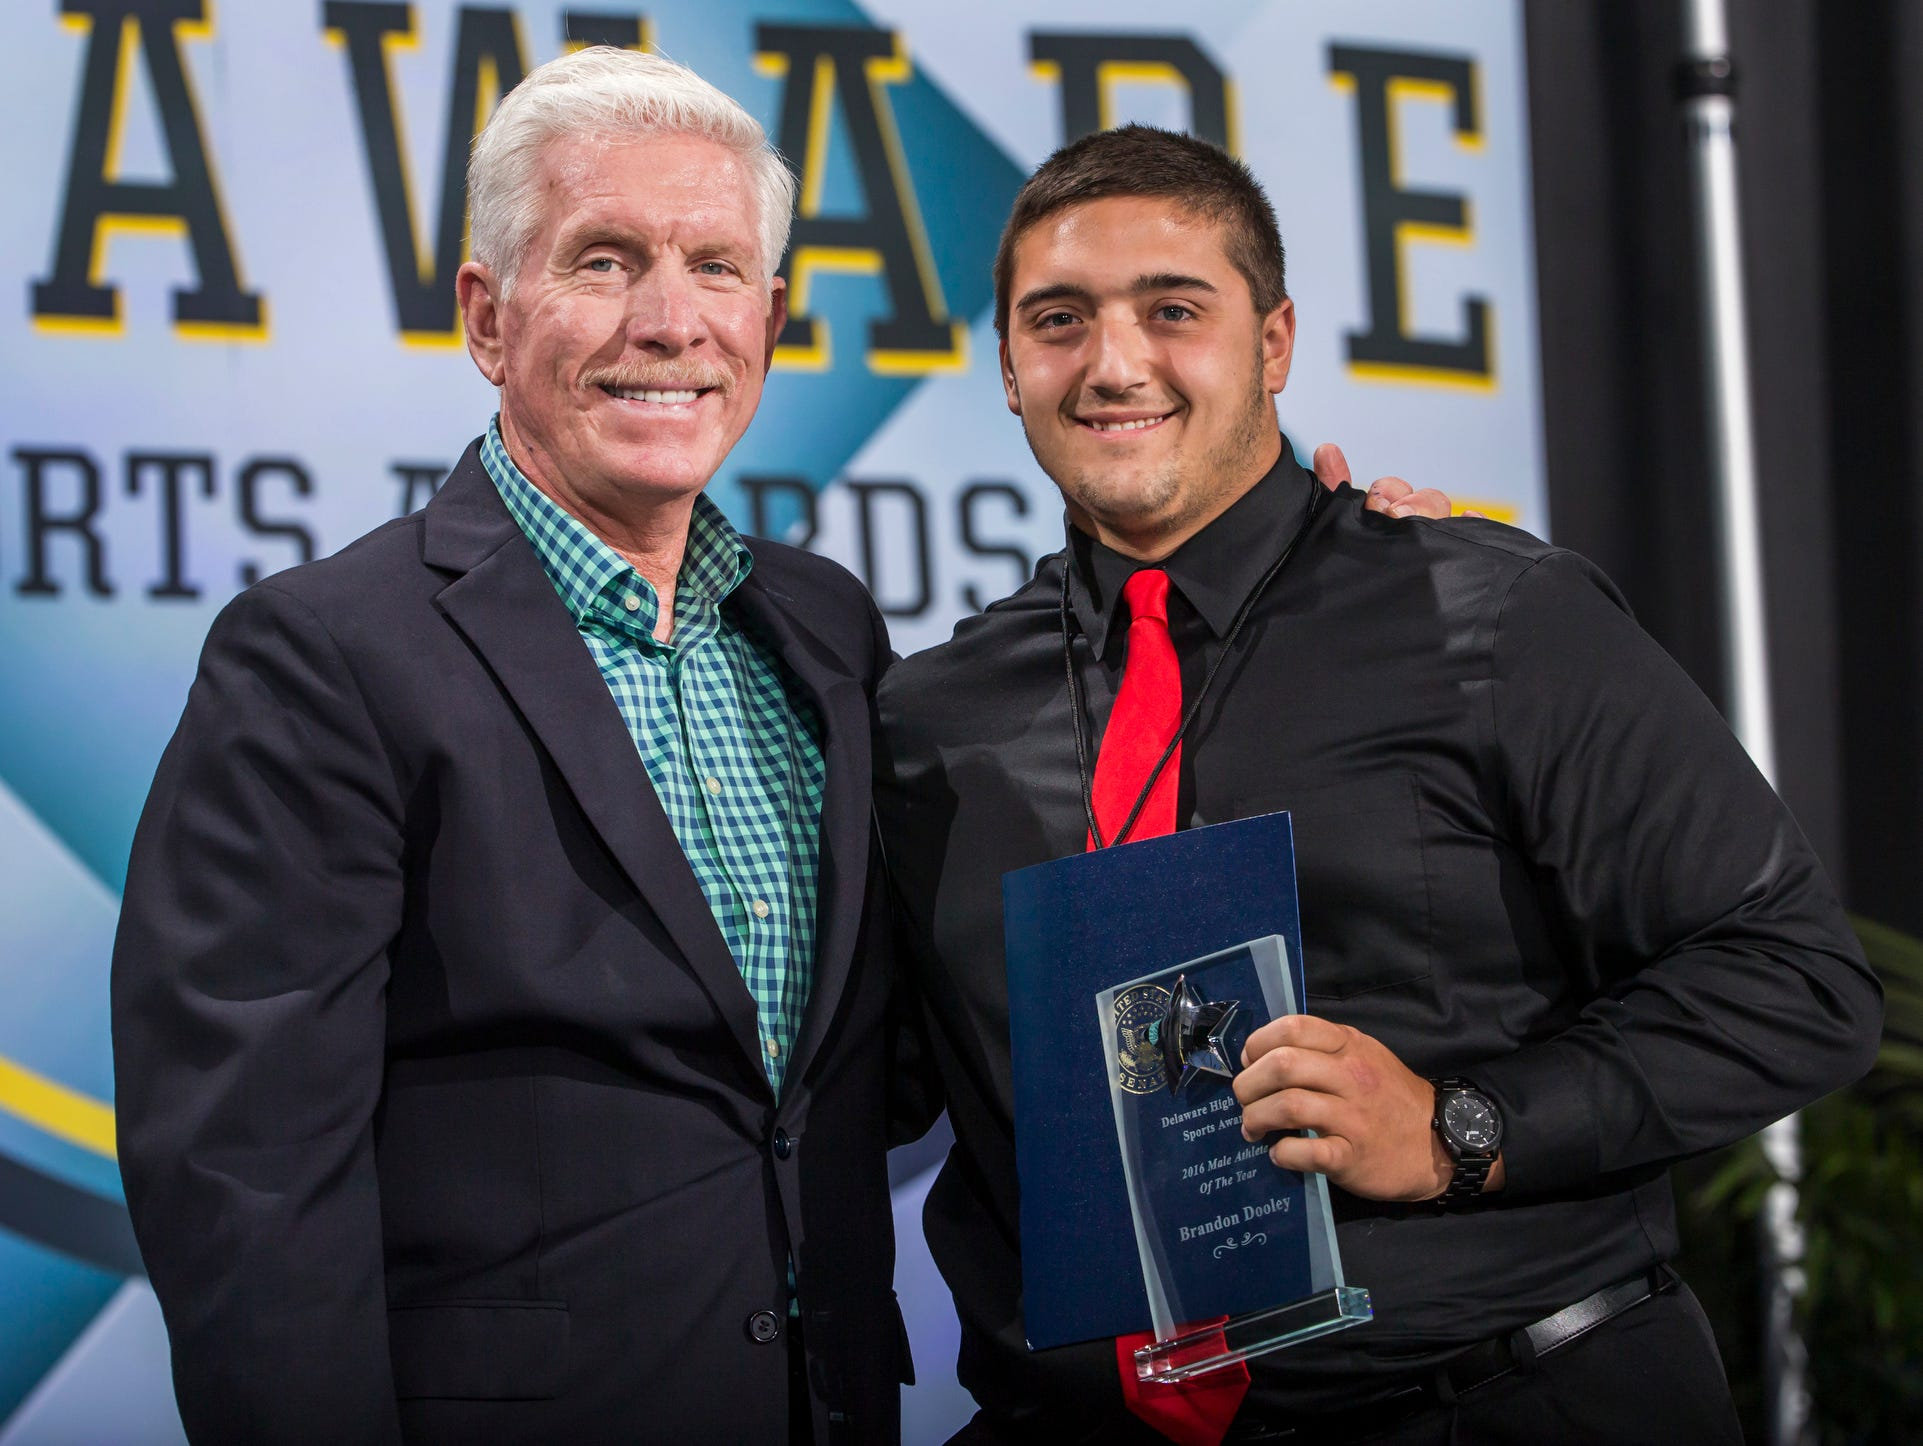 William Penn's Brandon Dooley poses with Mike Schmidt after being named the male athlete of the year at the Delaware Sports Awards banquet at the Bob Carpenter Center at the University of Delaware in Newark on Wednesday evening.